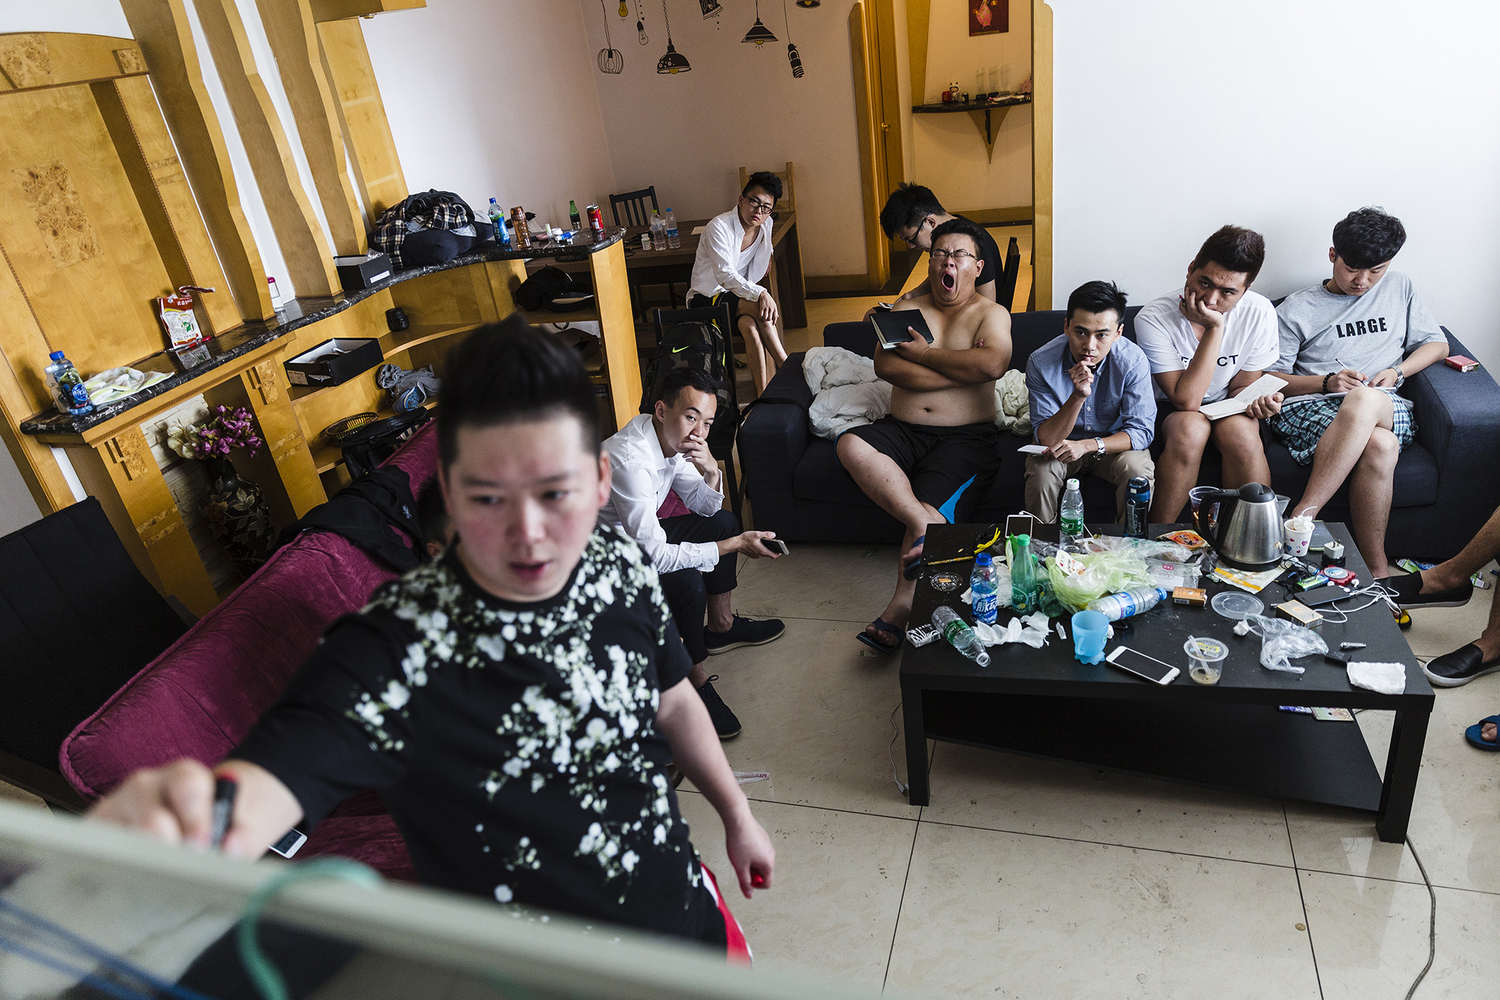 Wang Huanyu founded Puamap, a program that purports to teach its students how to seduce women. He introduces a program on the first day of training, in the three-bedroom apartment where the 12 students and three mentors study and live together, in Chengdu, May 16, 2015.